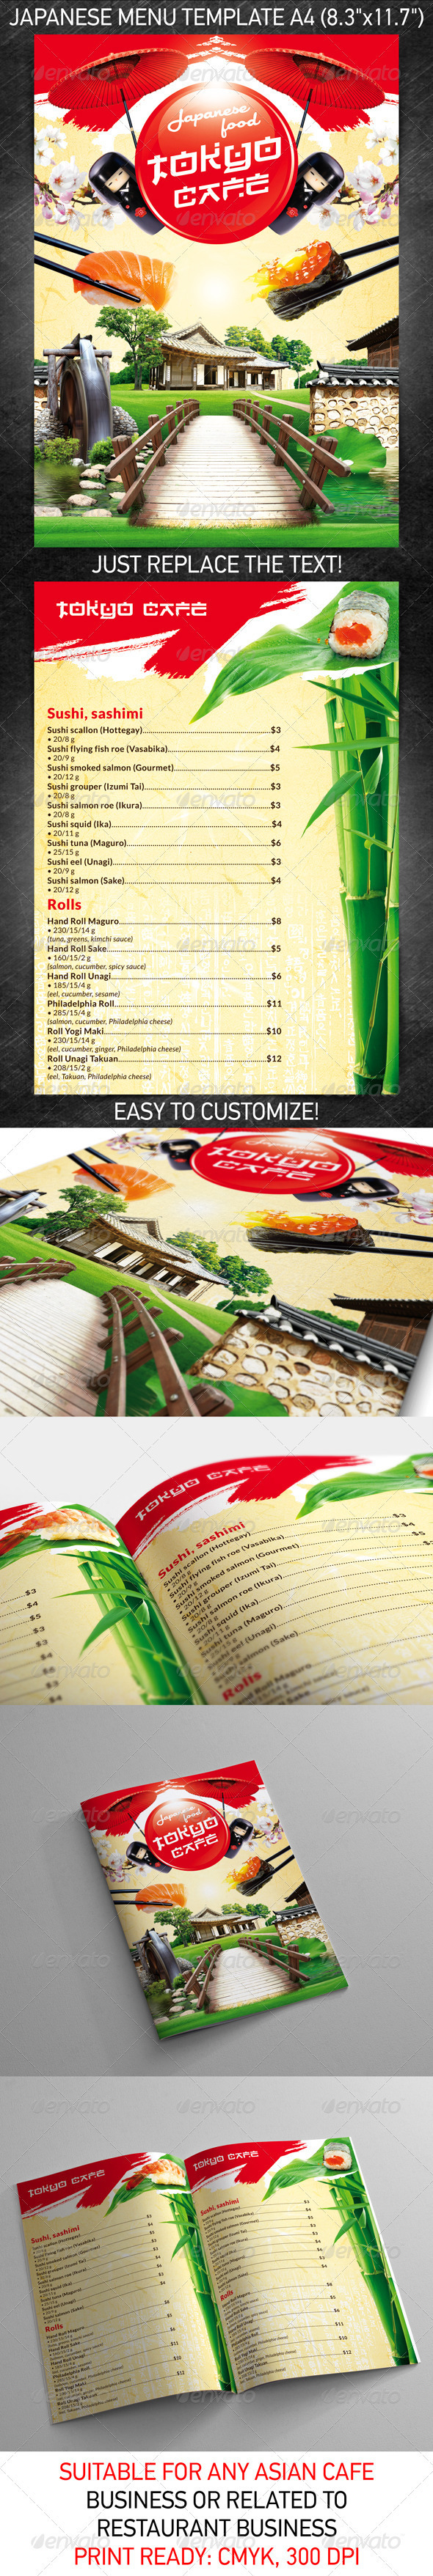 Japanese menu template psd on behance pronofoot35fo Choice Image